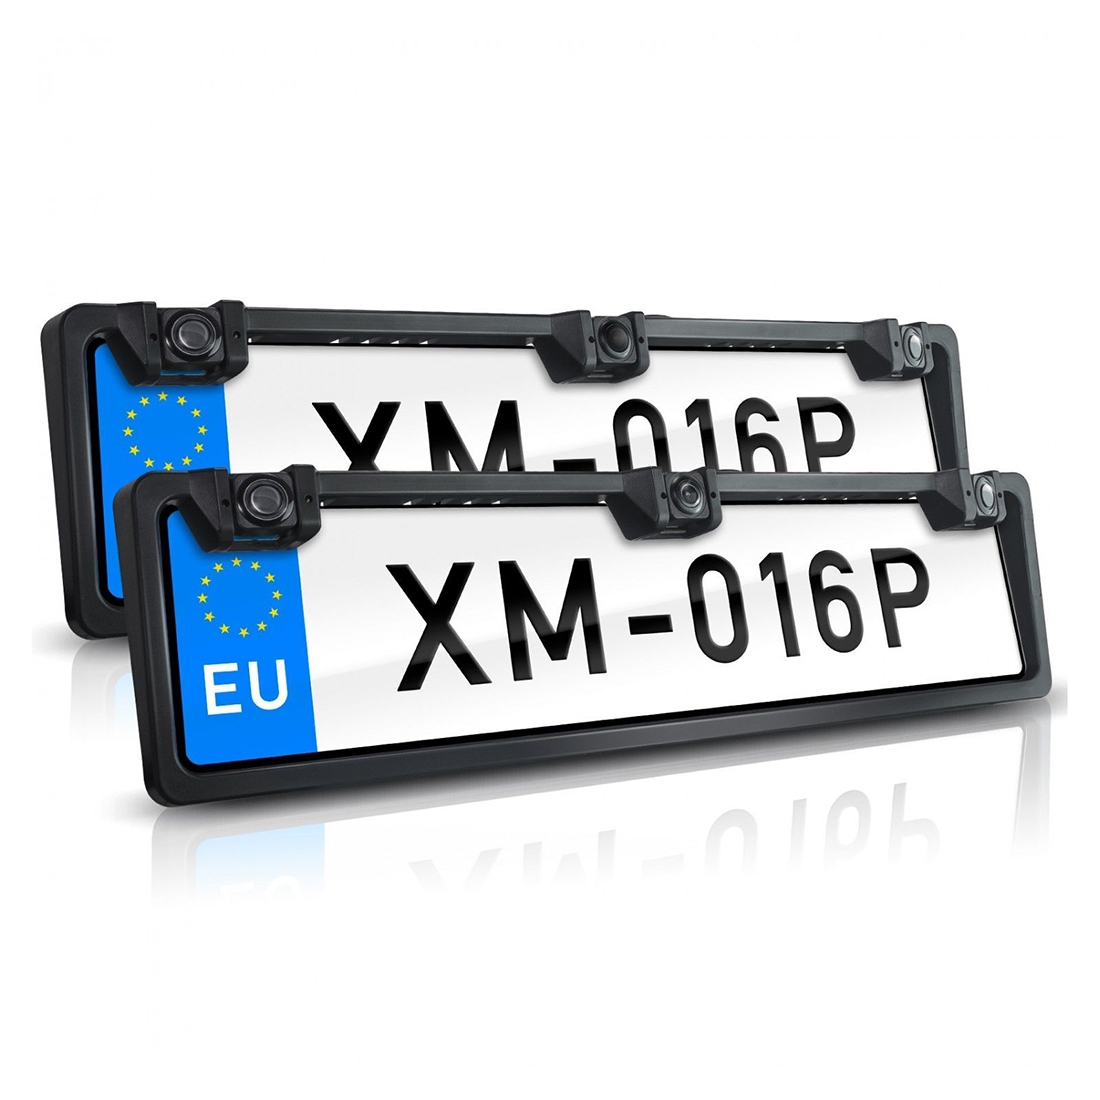 PZ600L-2 Europe Car License Plate Frame Front Rear View ...